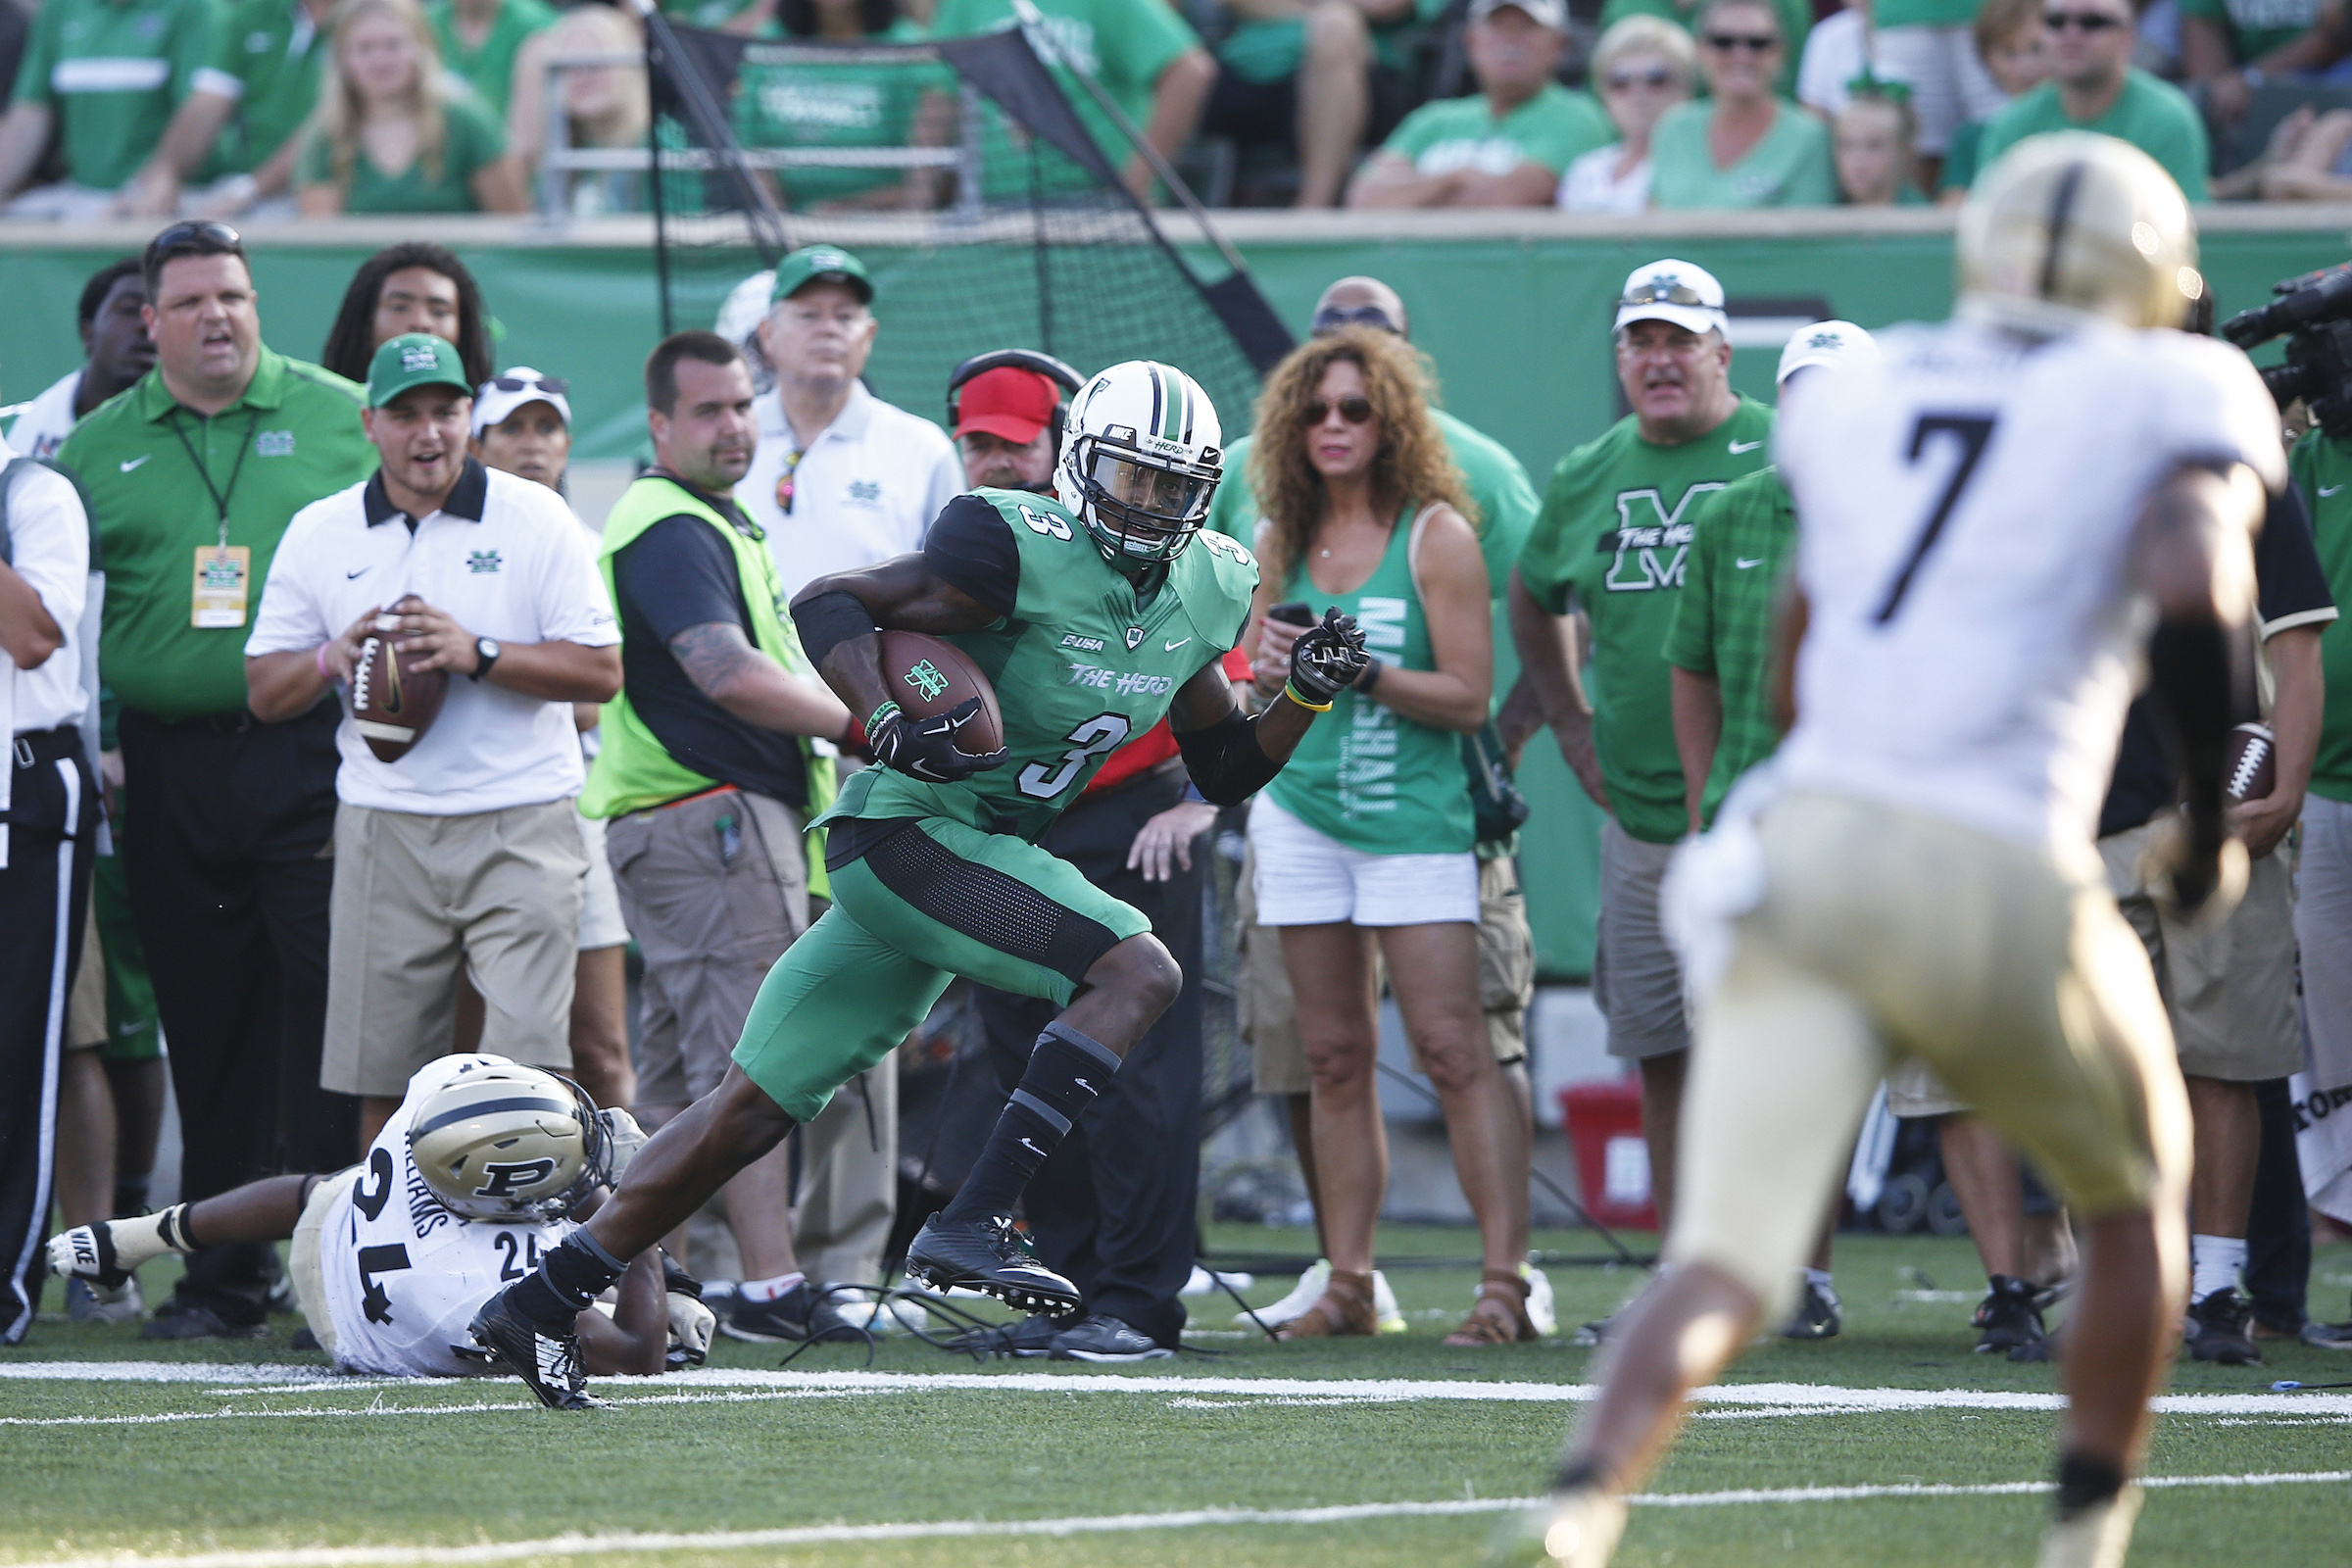 HUNTINGTON, WV - SEPTEMBER 6: Davonte Allen #3 of the Marshall Thundering Herd makes a third down reception to help set up the go ahead touchdown in the second half against the Purdue Boilermakers at Joan C. Edwards Stadium on September 6, 2015 in Huntington, West Virginia. Marshall defeated Purdue 41-31. (Photo by Joe Robbins/Getty Images)